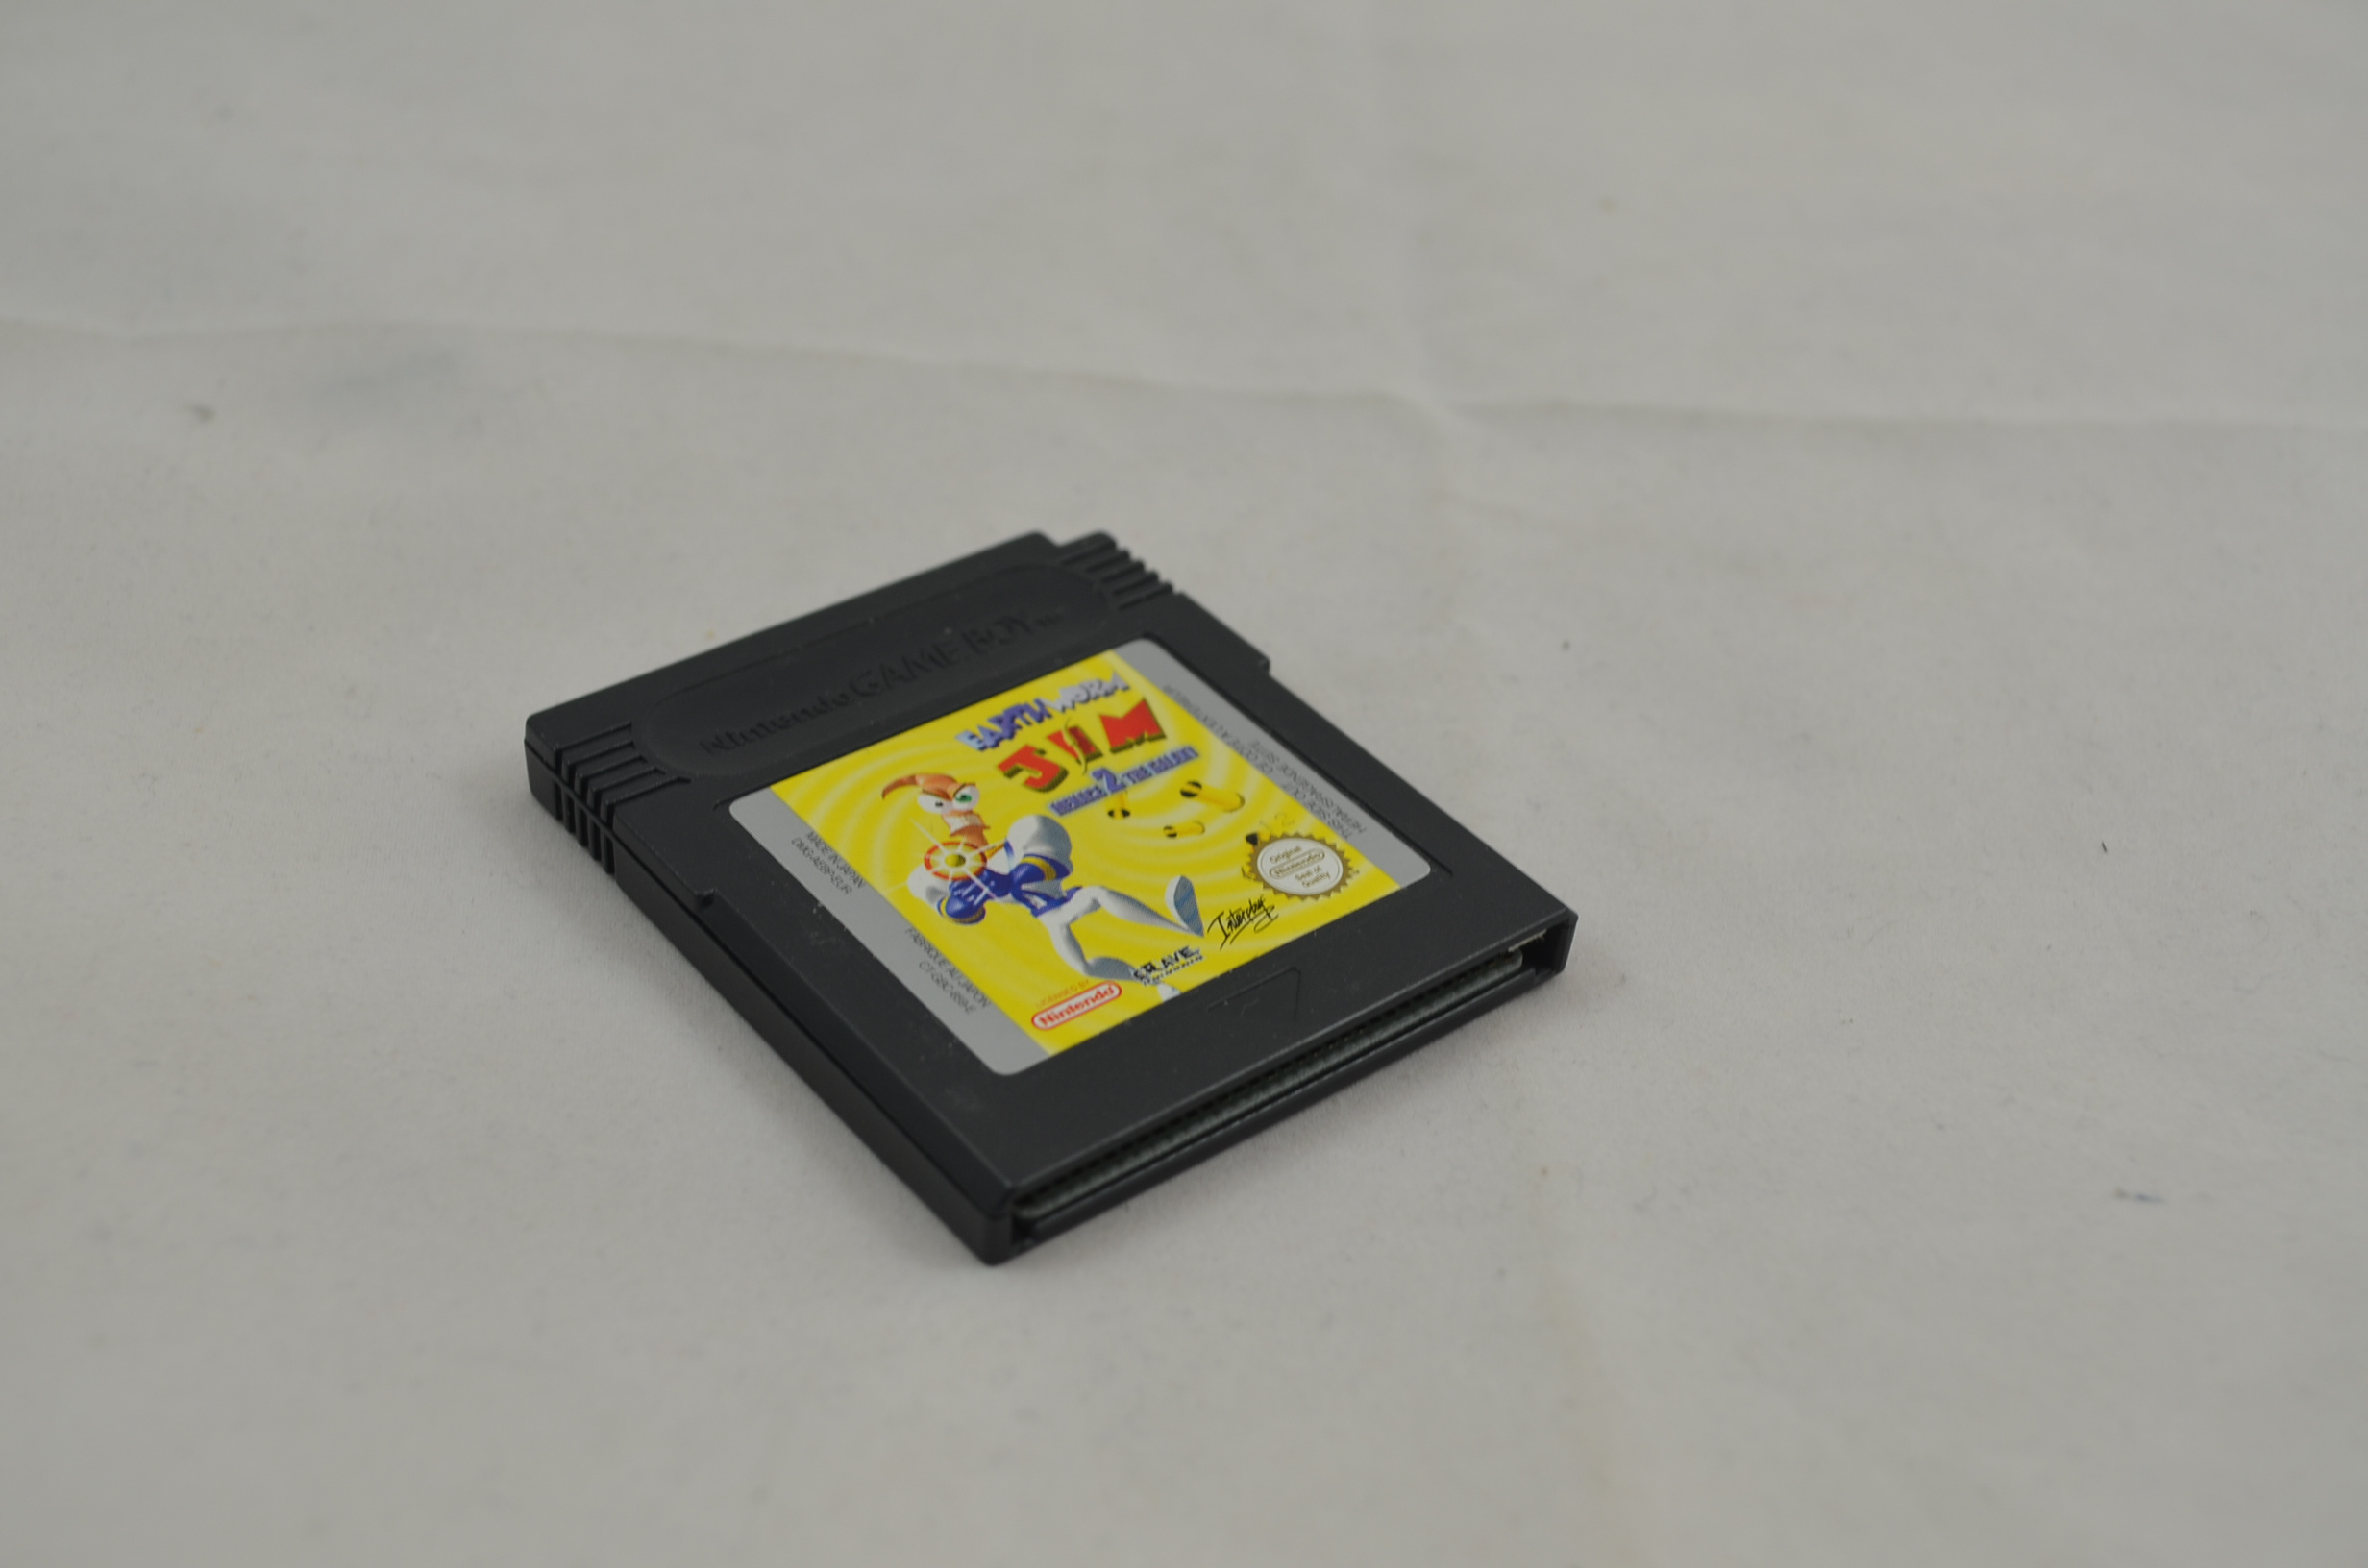 Produktbild von Earth Worm Jim Menace 2 the Galaxy Game Boy Spiel